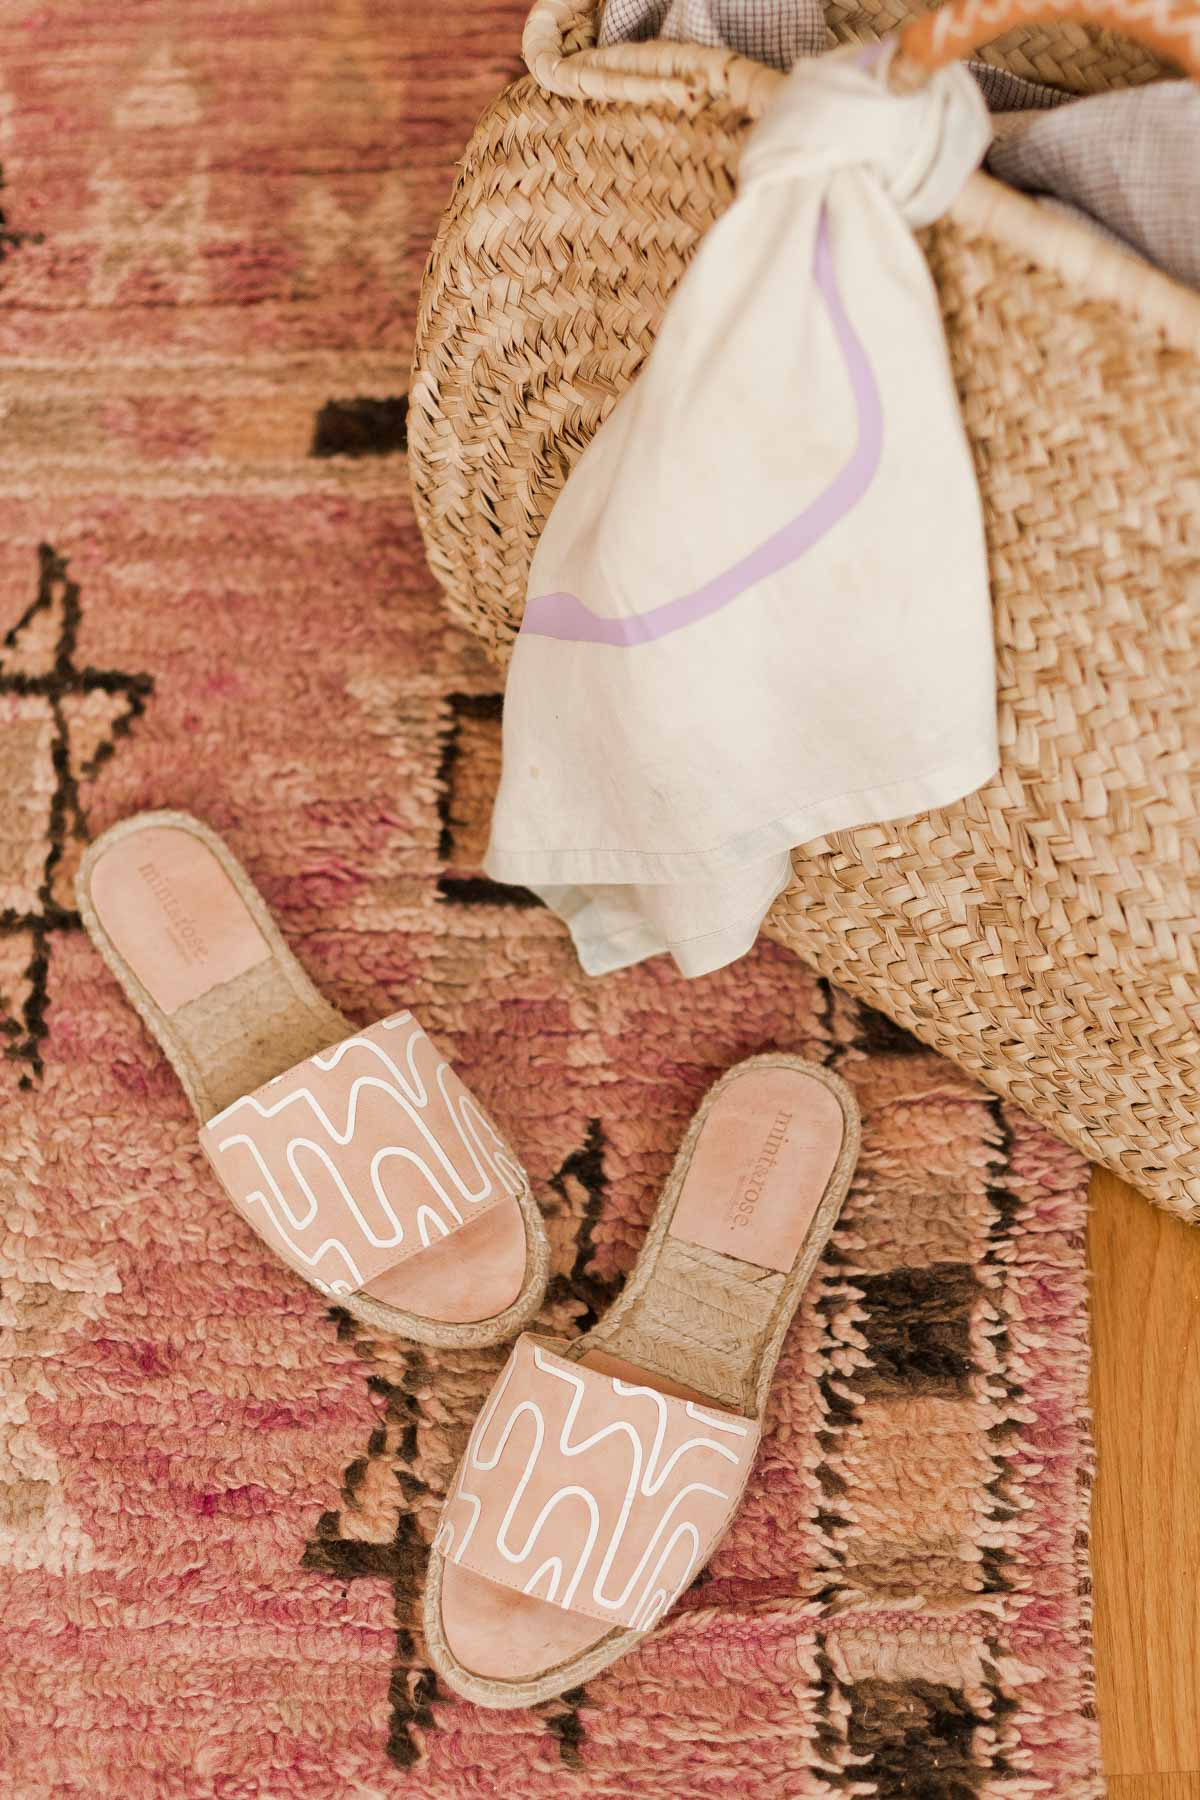 Give old sandals new life with a quick (and easy) makeover. Click through for the tutorial AND free downloadable patterns to add unique prints to nearly anything you can think of. #diy #diysummer #summer #summeraccessories #sandals